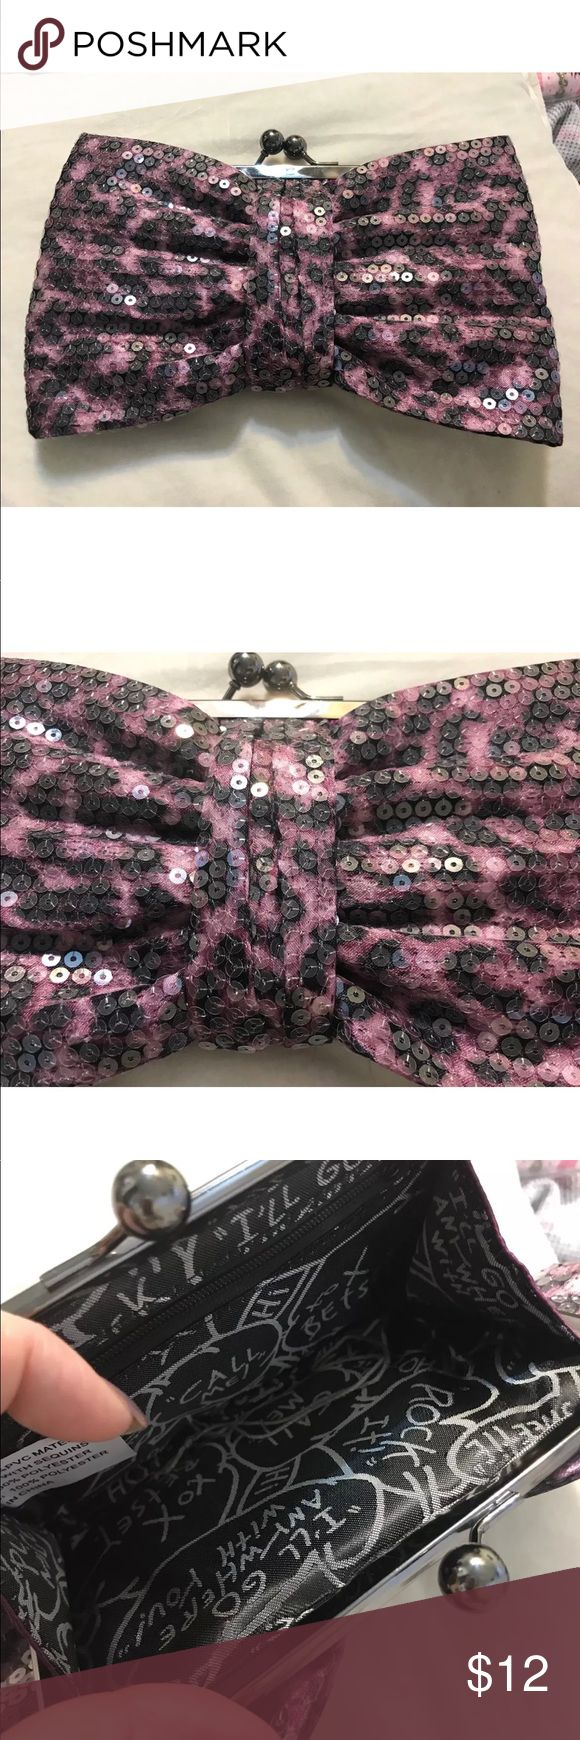 """Betsey Johnson Sequined Bow Leopard Clutch Purse Adorable! It very good condition! See pics for details. About 9-10"""" in length. Pre Owned with some light wear. Very nice inside. See pics! I have more BJ listed as well Betsey Johnson Bags Clutches & Wristlets"""